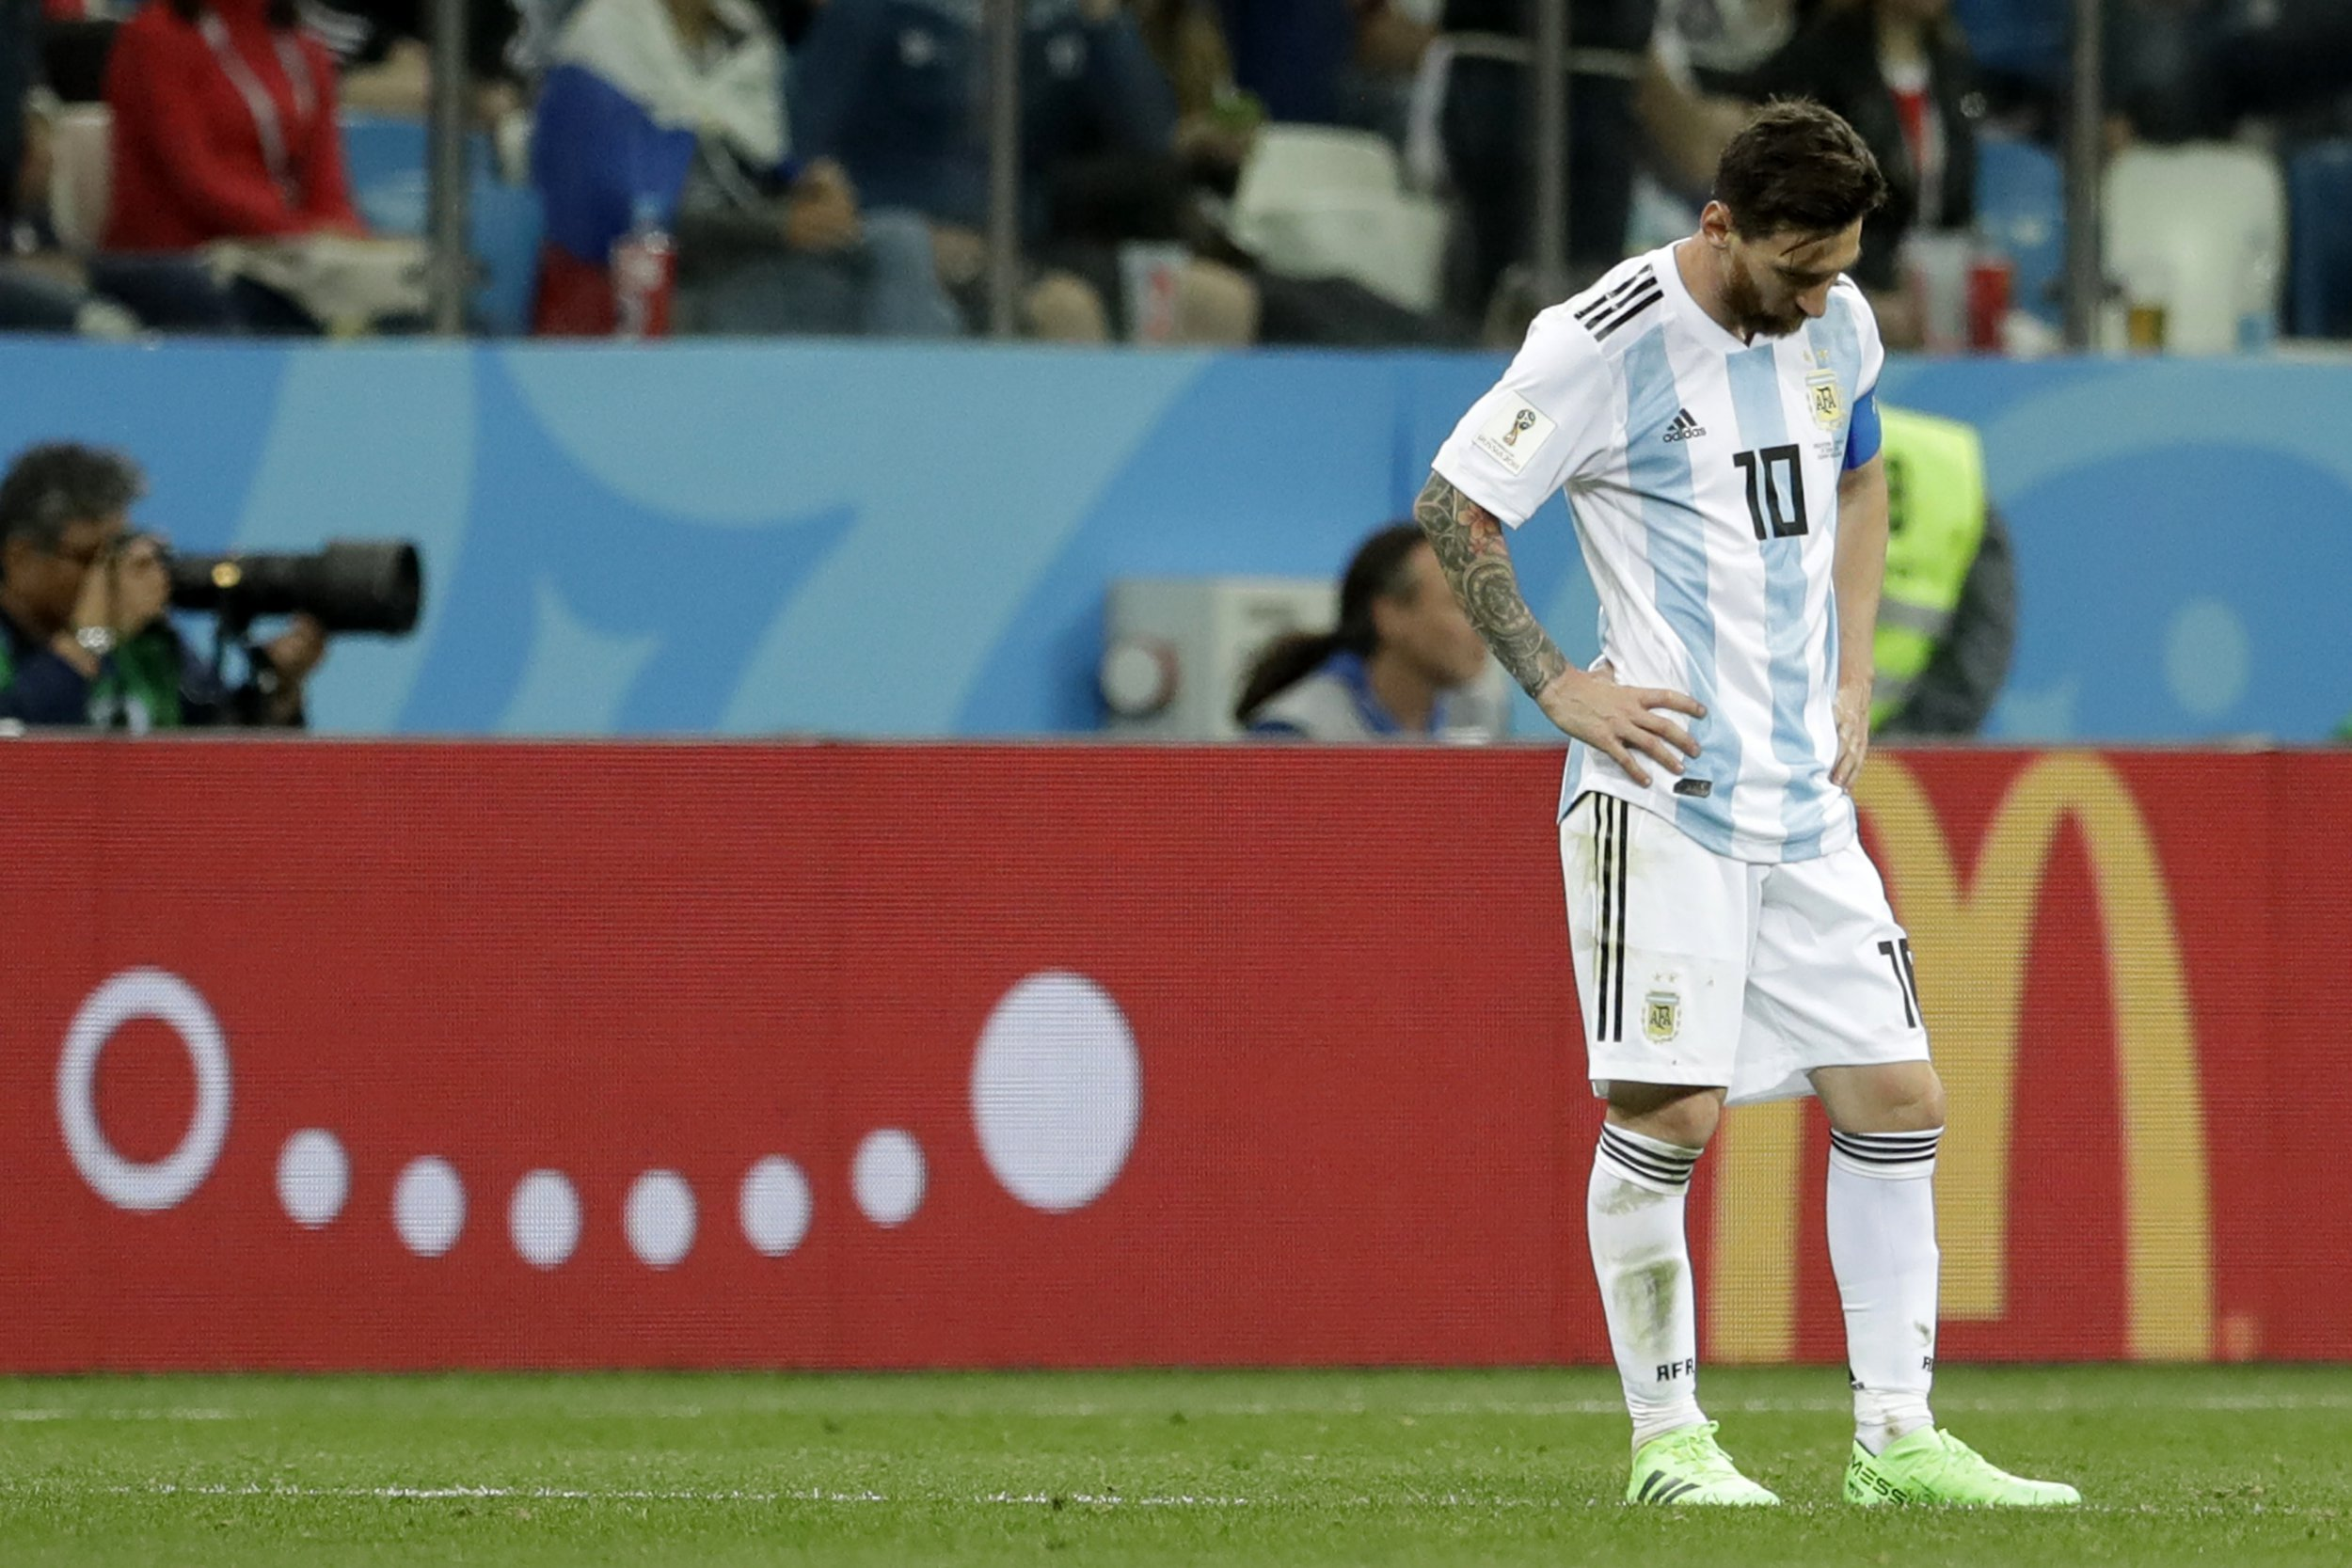 Willy Caballero howler and Luka Modric stunner puts Lionel Messi and Argentina on brink of World Cup exit